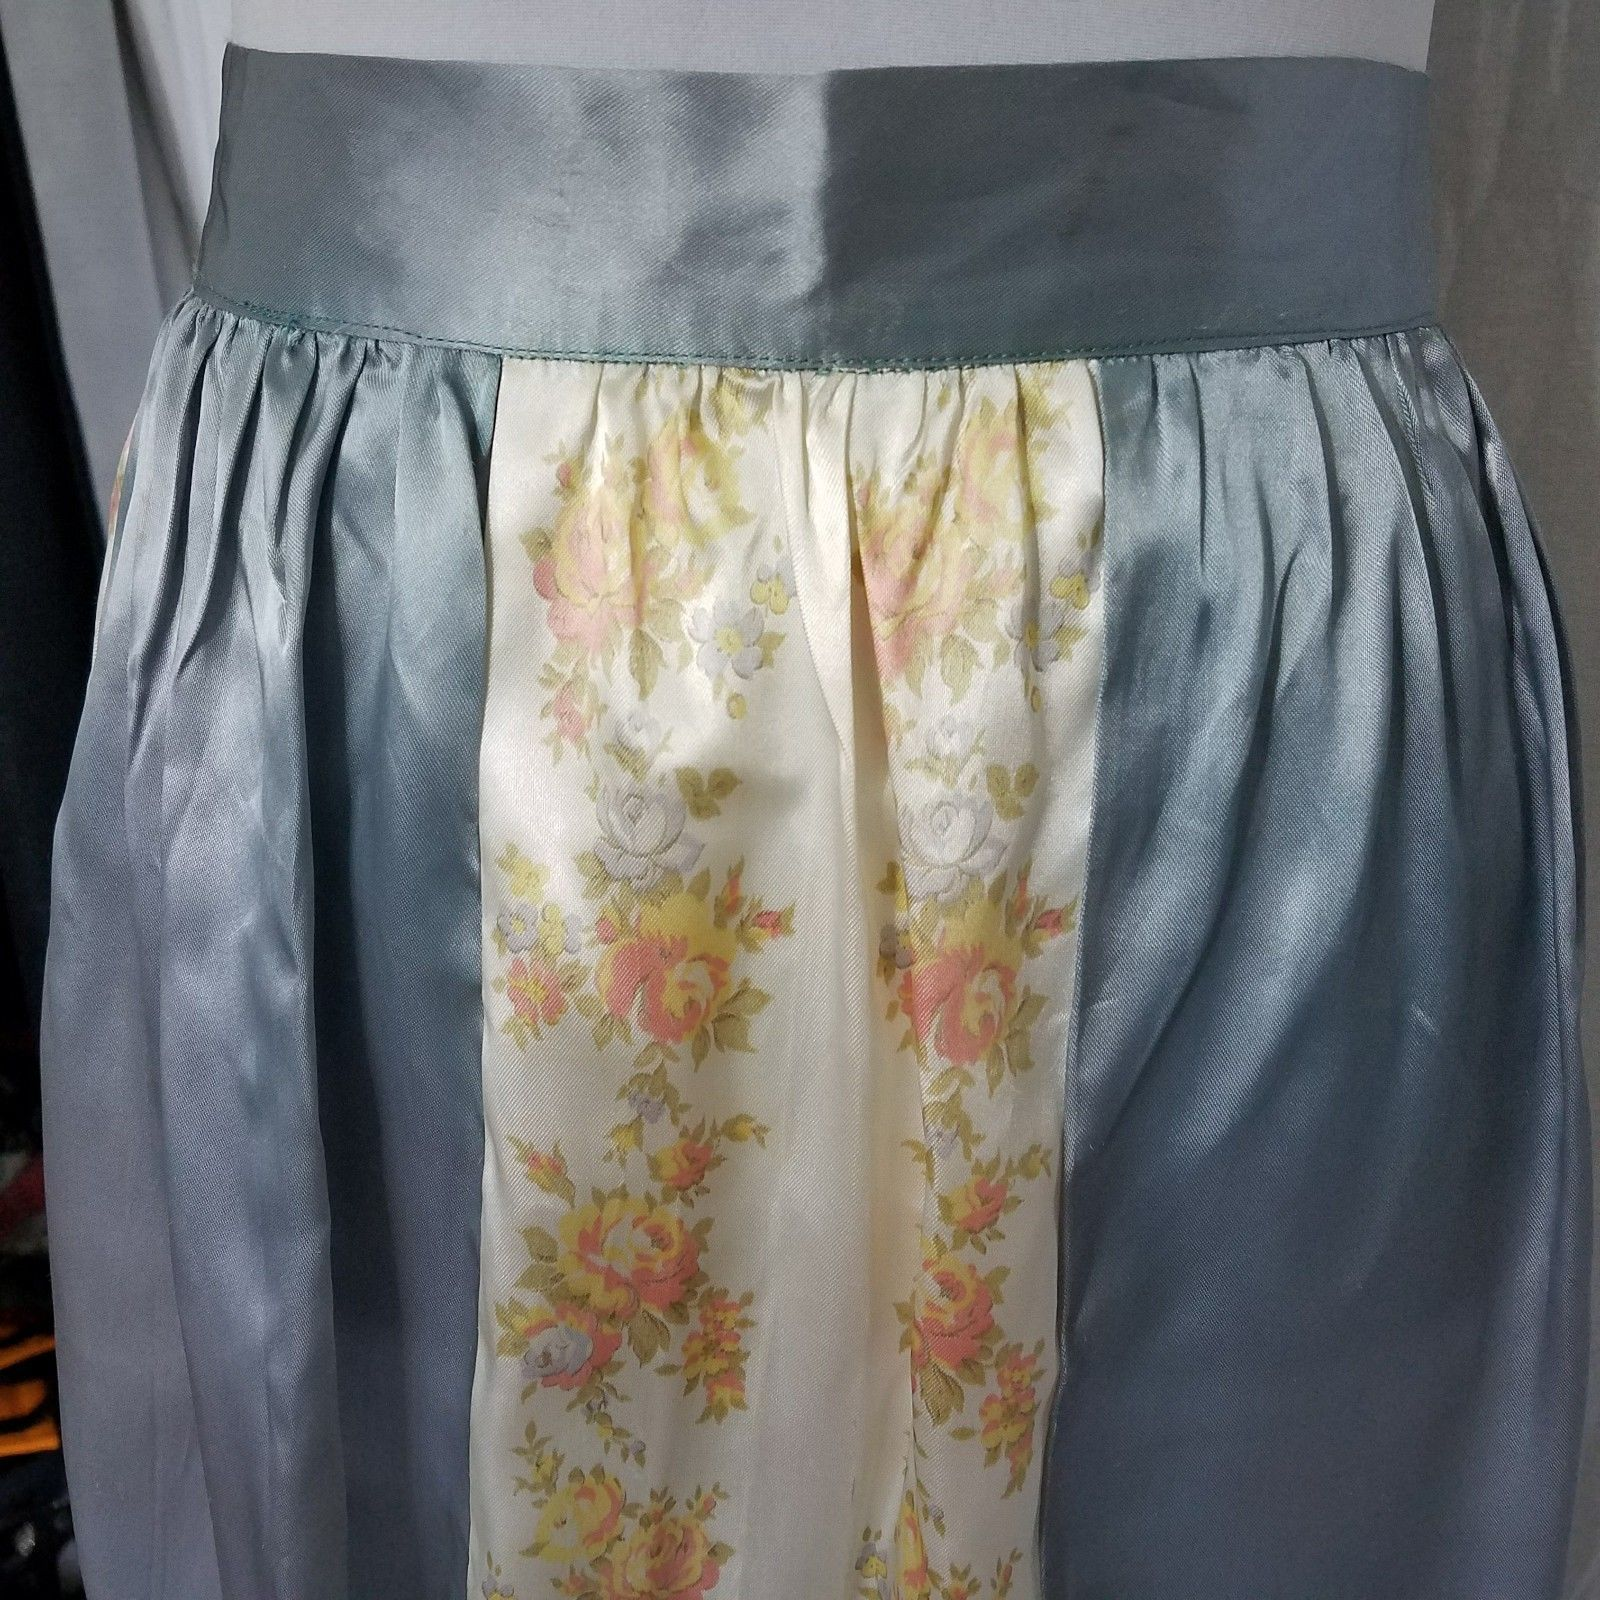 1950 Hostess Half Apron Icy Blue Yellow Floral Satin Panels Ties in Back  Bow